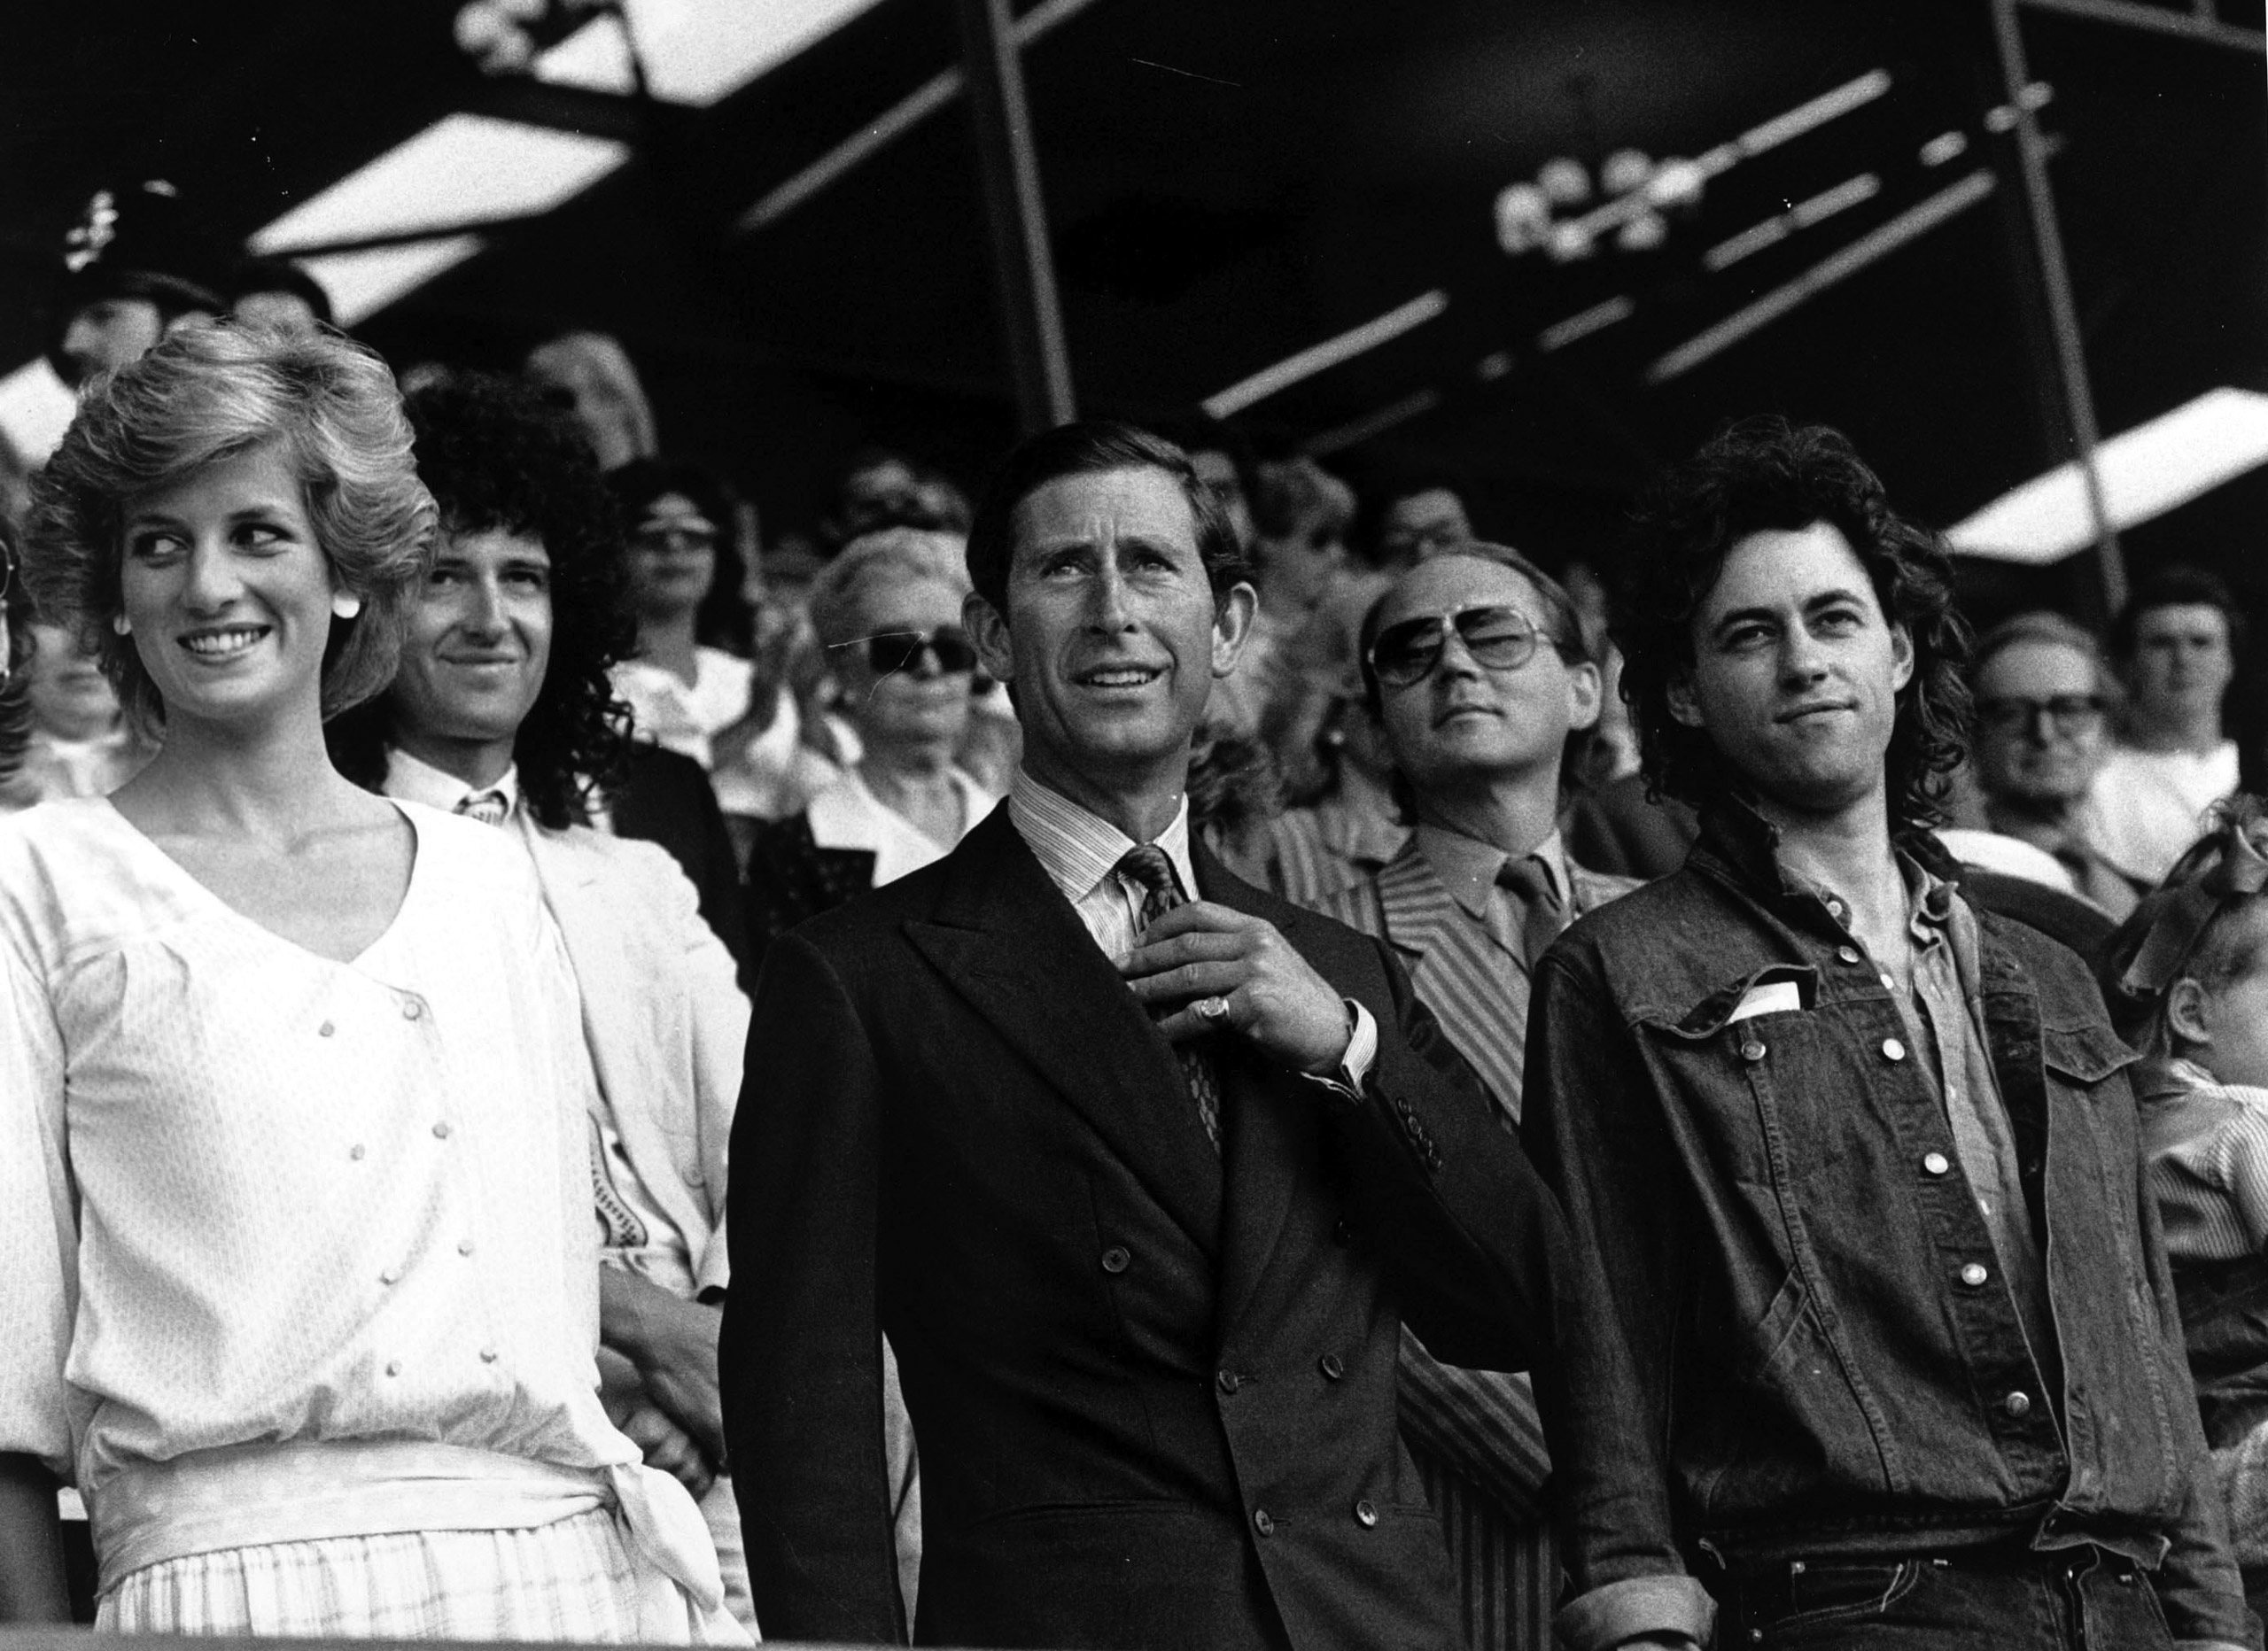 The Prince and Princess of Wales with Bob Geldof at the Live Aid concert at Wembley Stadium in London, July 13, 1985.